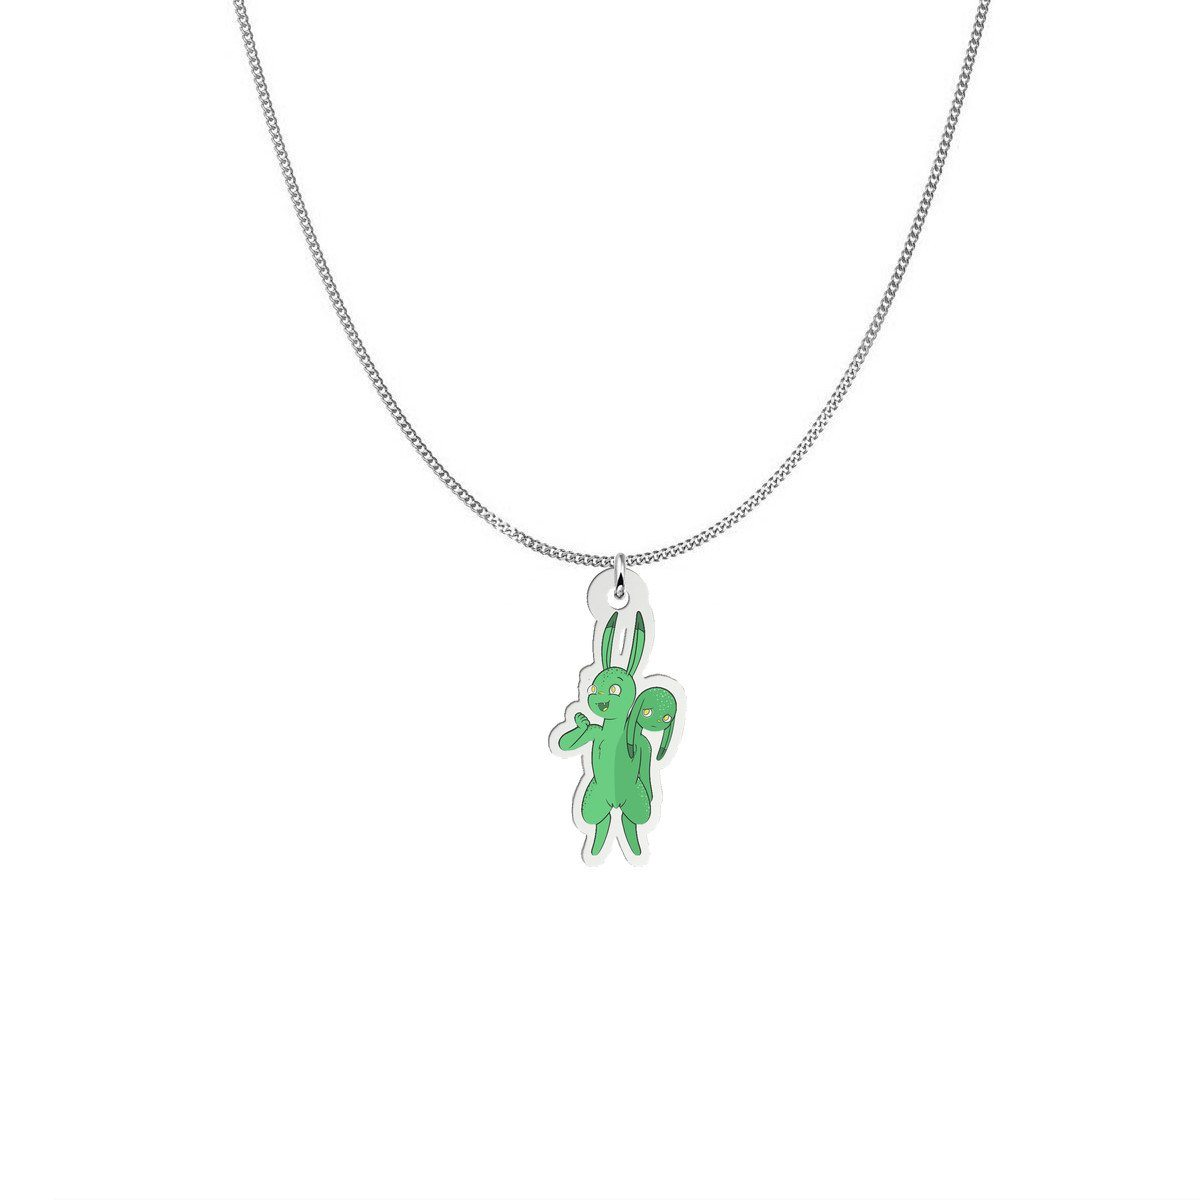 Pendant - Lara The Bipolar Disorder Monster Silver Necklace